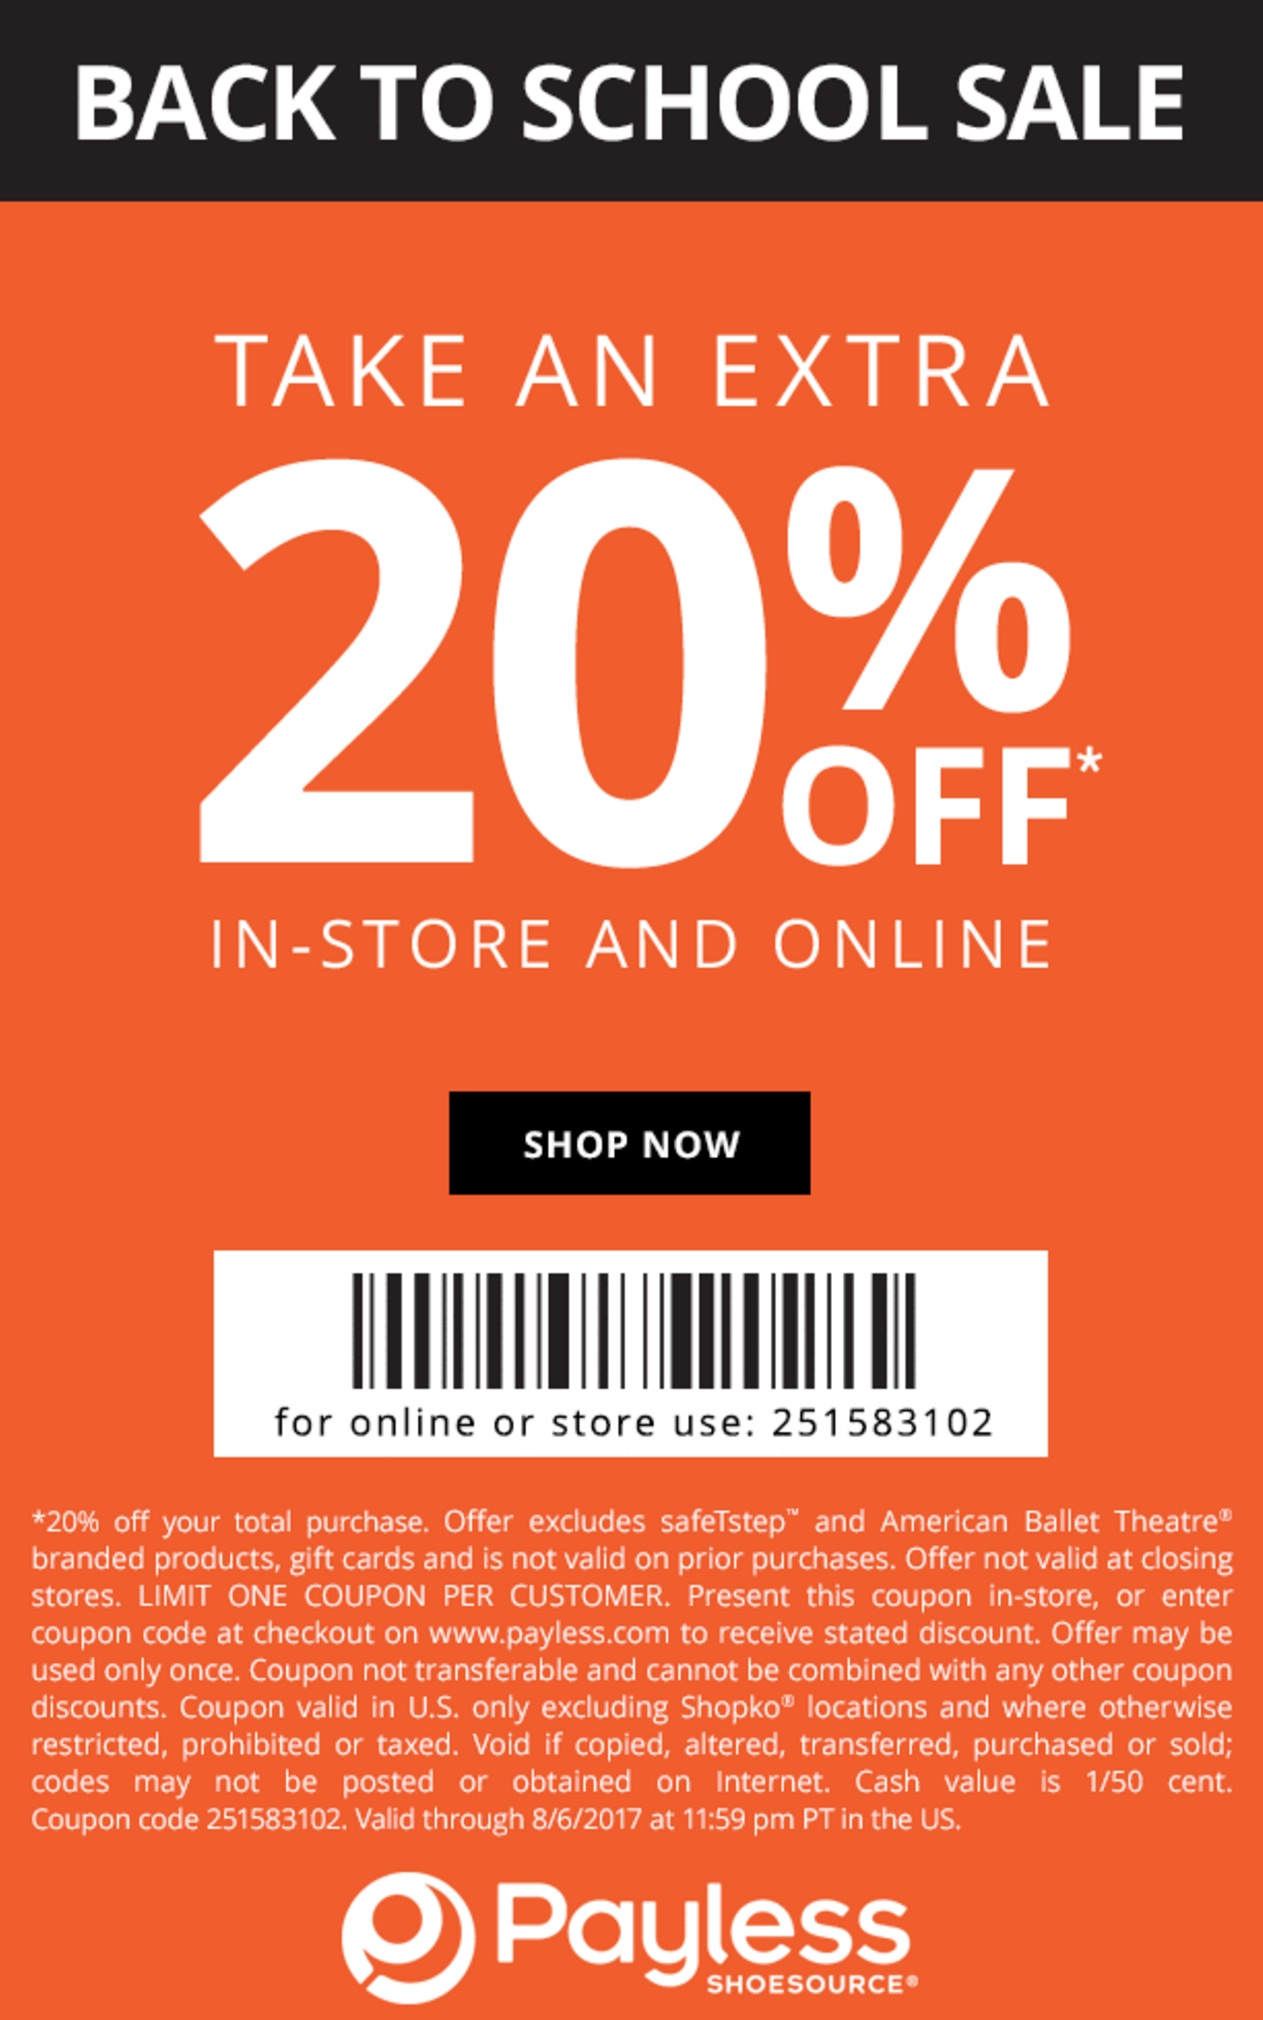 Alamo coupons online - Payless Coupon For 20 Off Your Purchase Of One Single Item At Payless